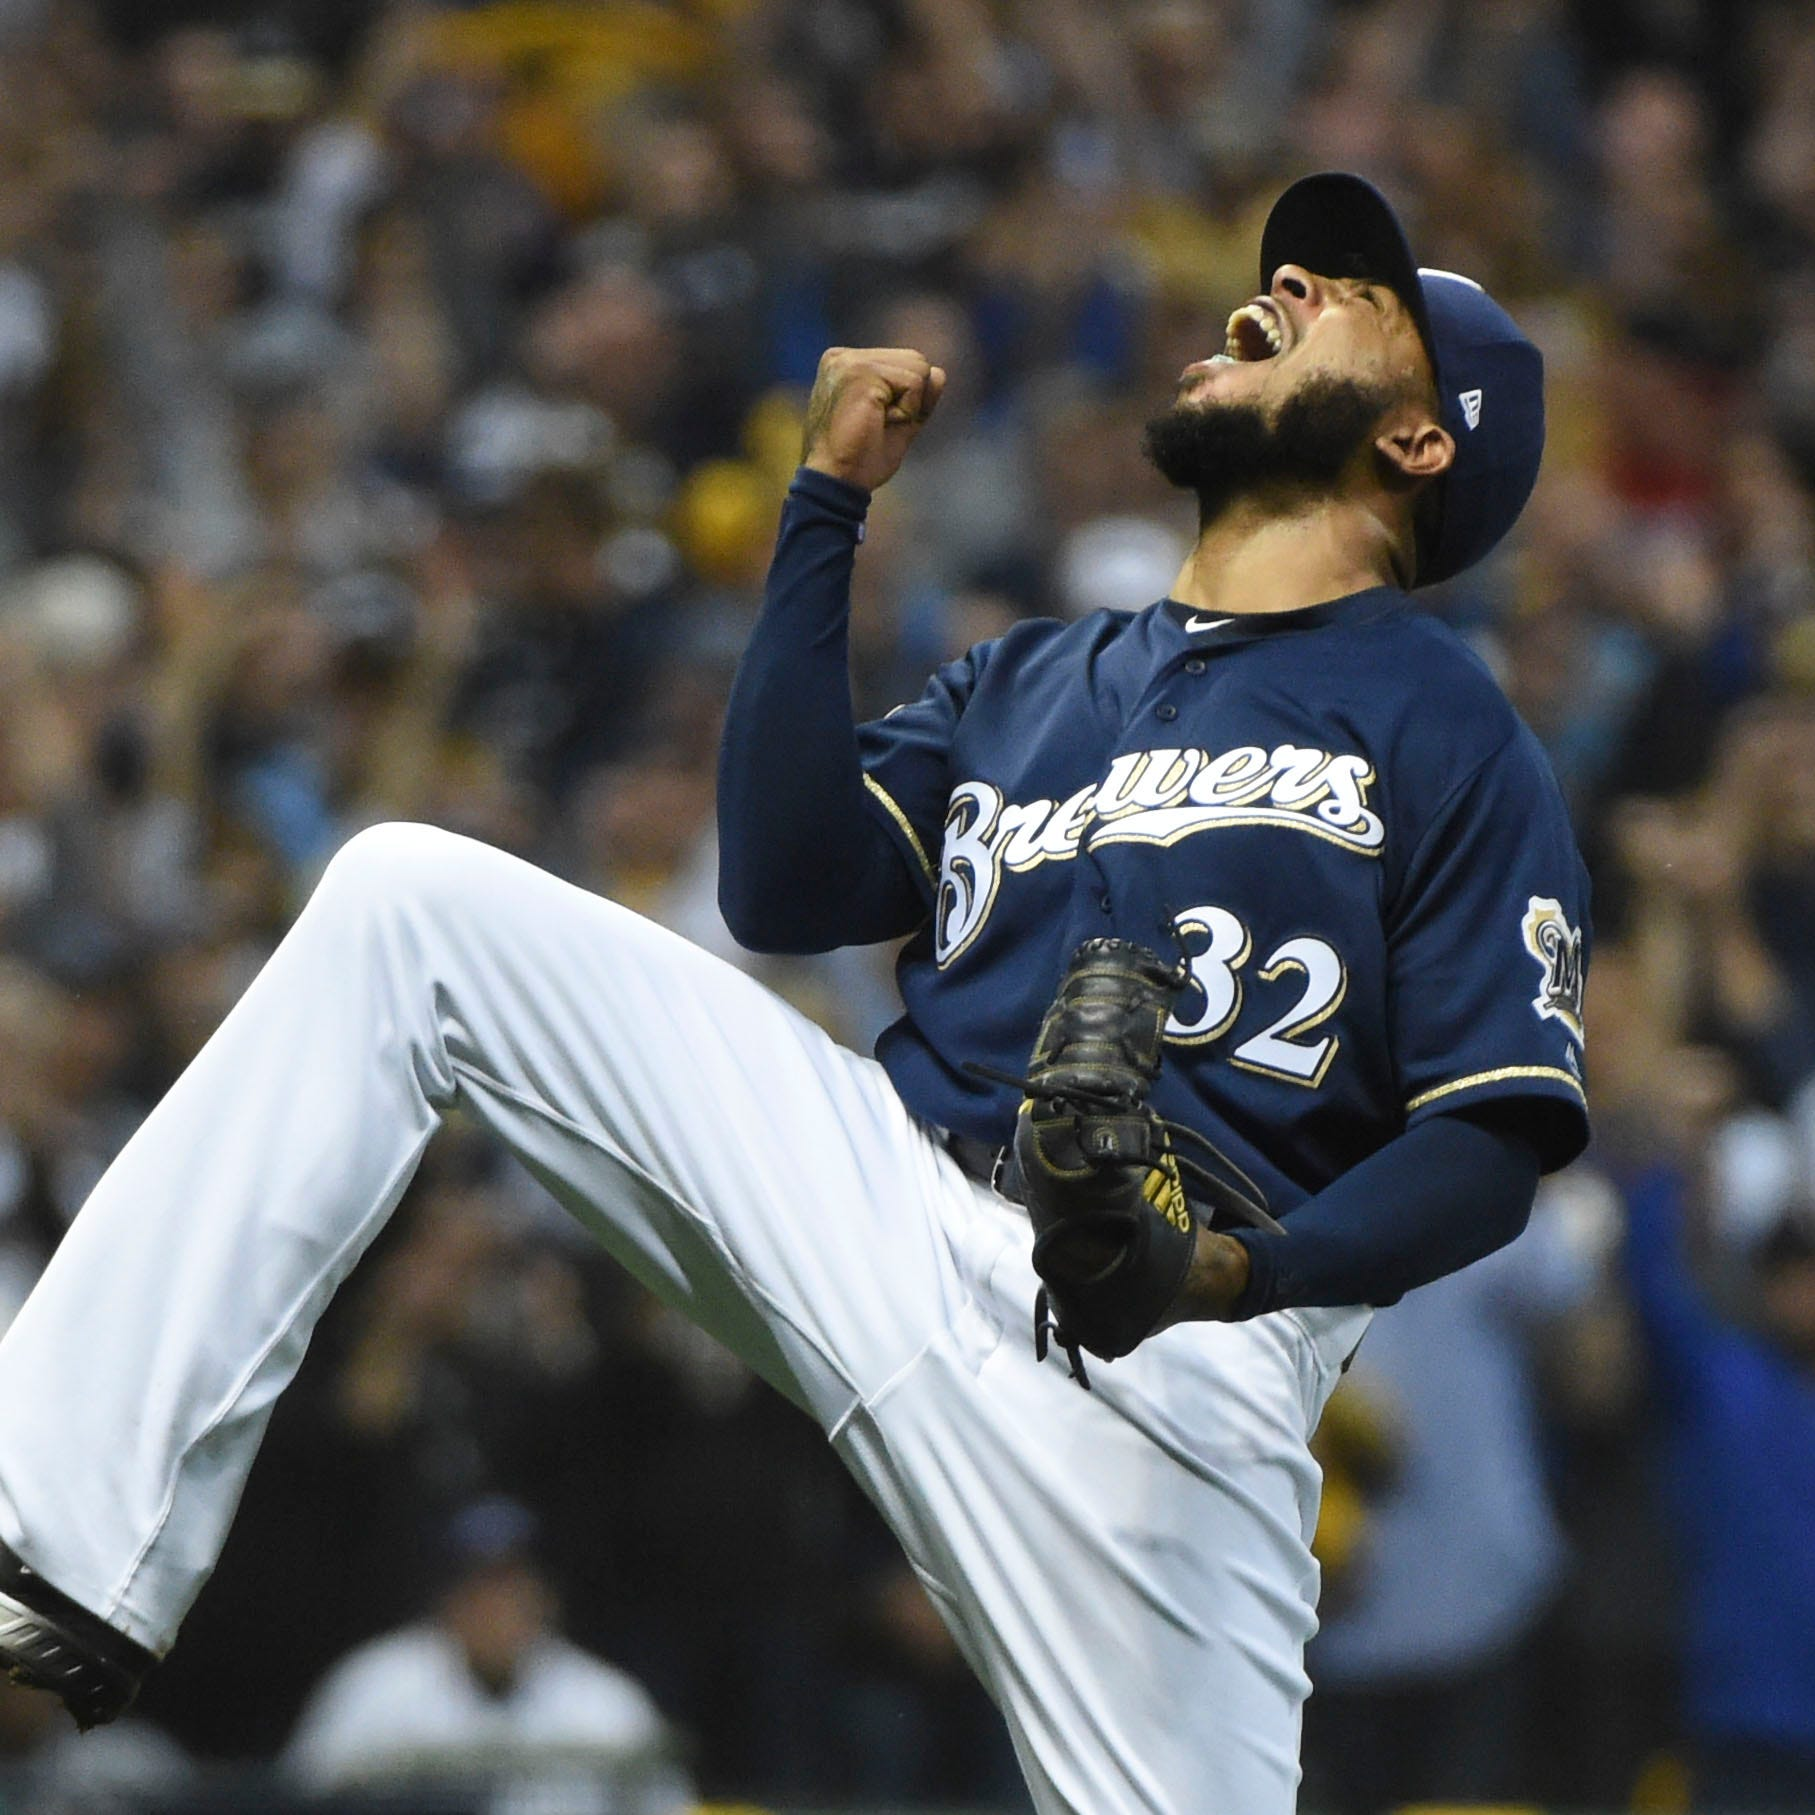 Jeremy Jeffress is pumped. He'll come off the injured list Tuesday eager to pitch.